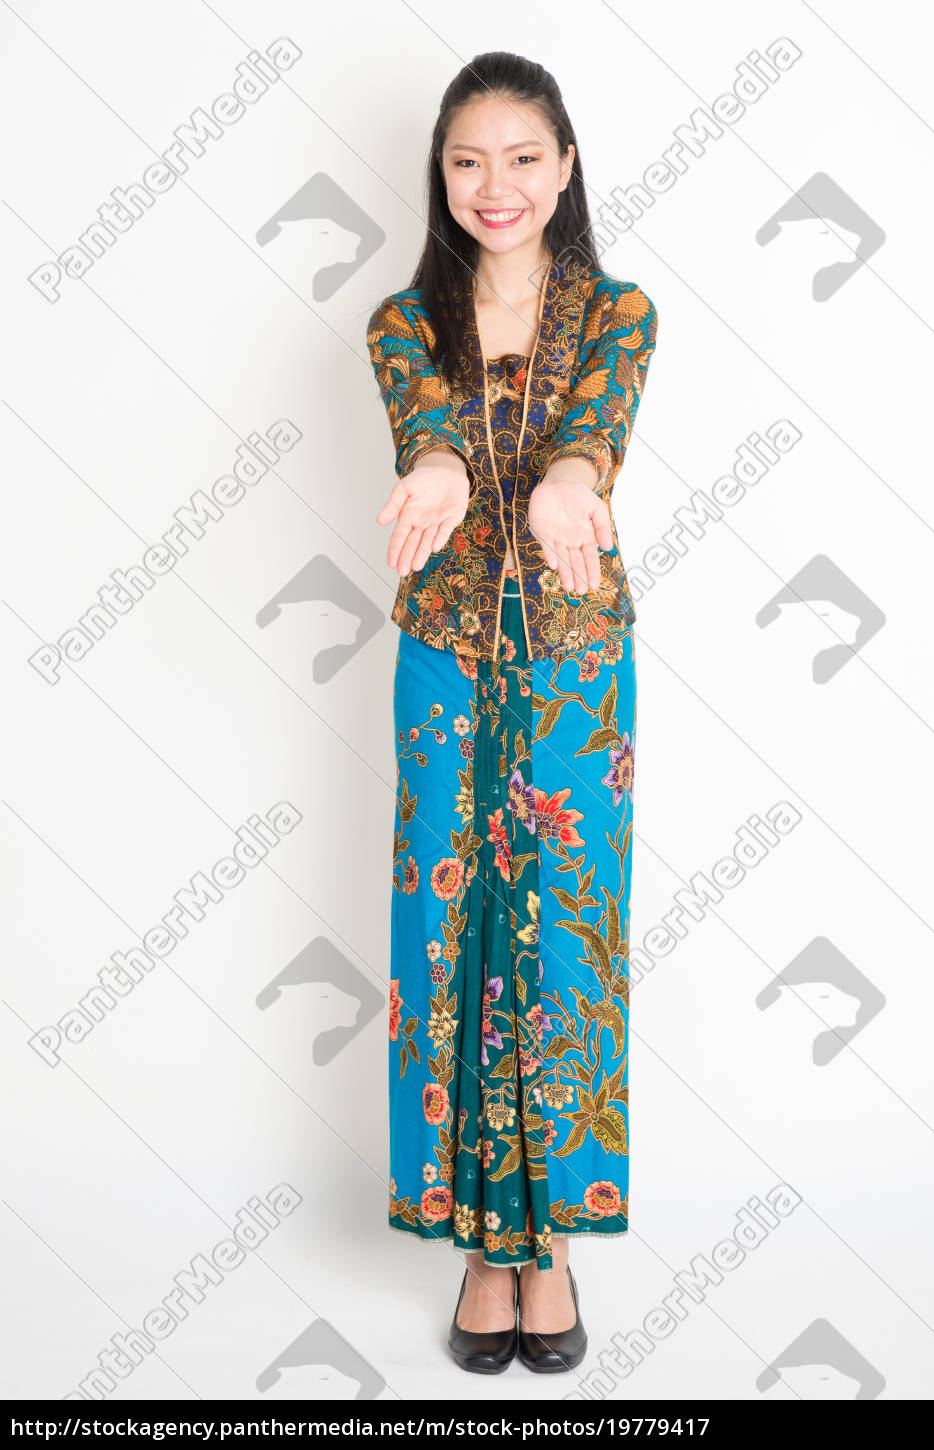 f0526a10b Southeast Asian girl hand showing something - Royalty free image ...